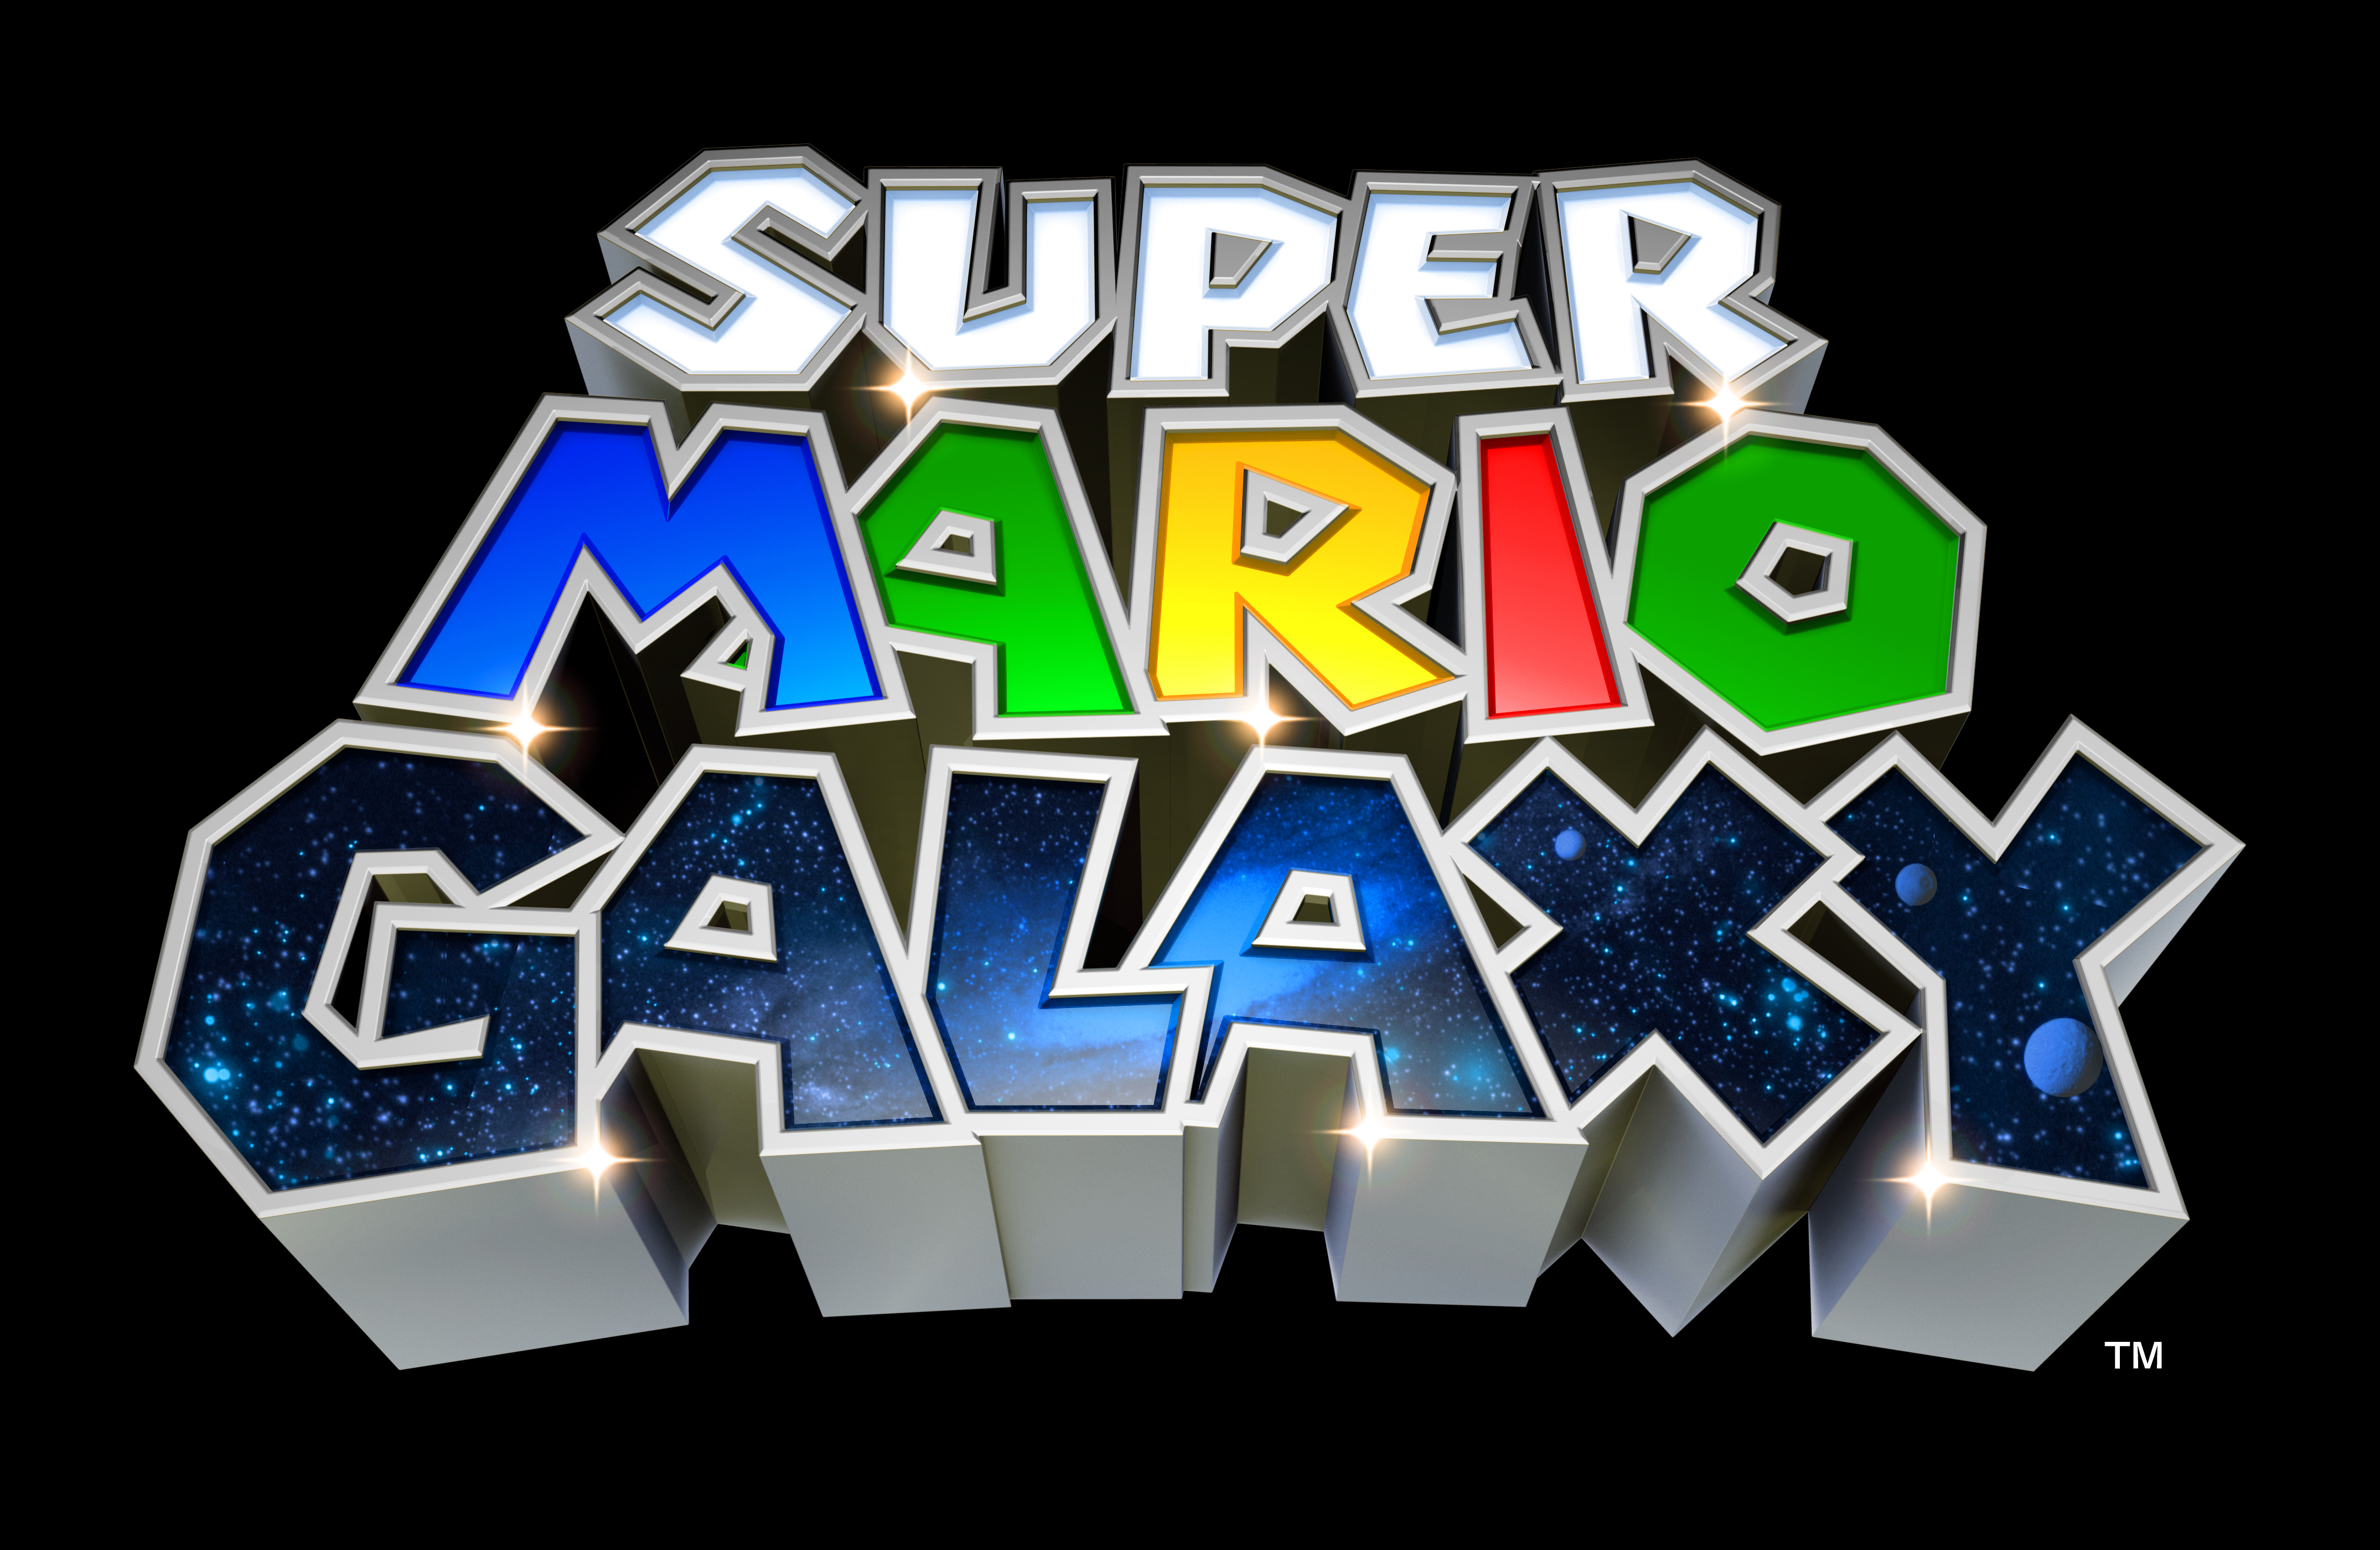 https://www.mariowiki.it/images/c/ca/SMG-Logo.png